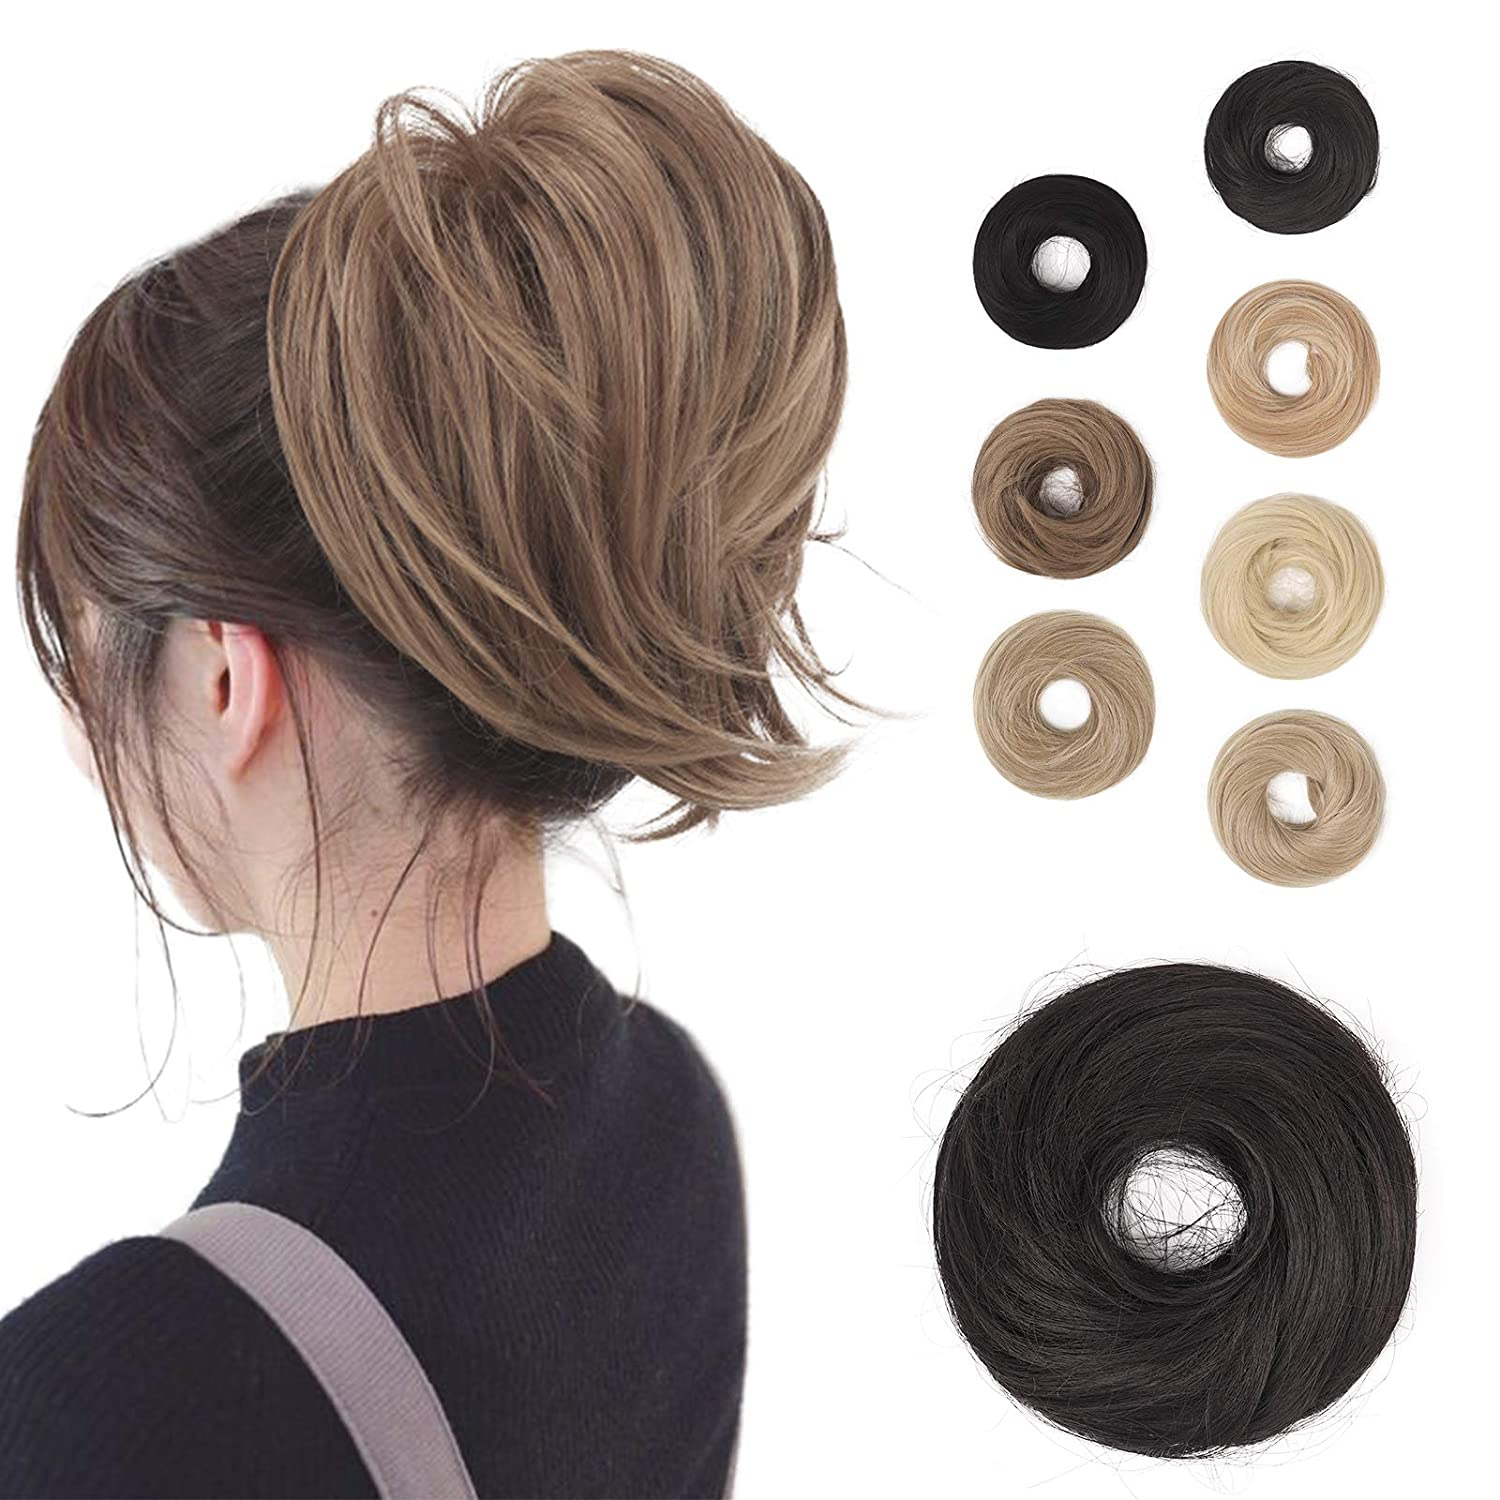 BARSDAR Hair Bun Ponytail Hairpiec Extension Straight Online limited product Ranking TOP14 Synthetic